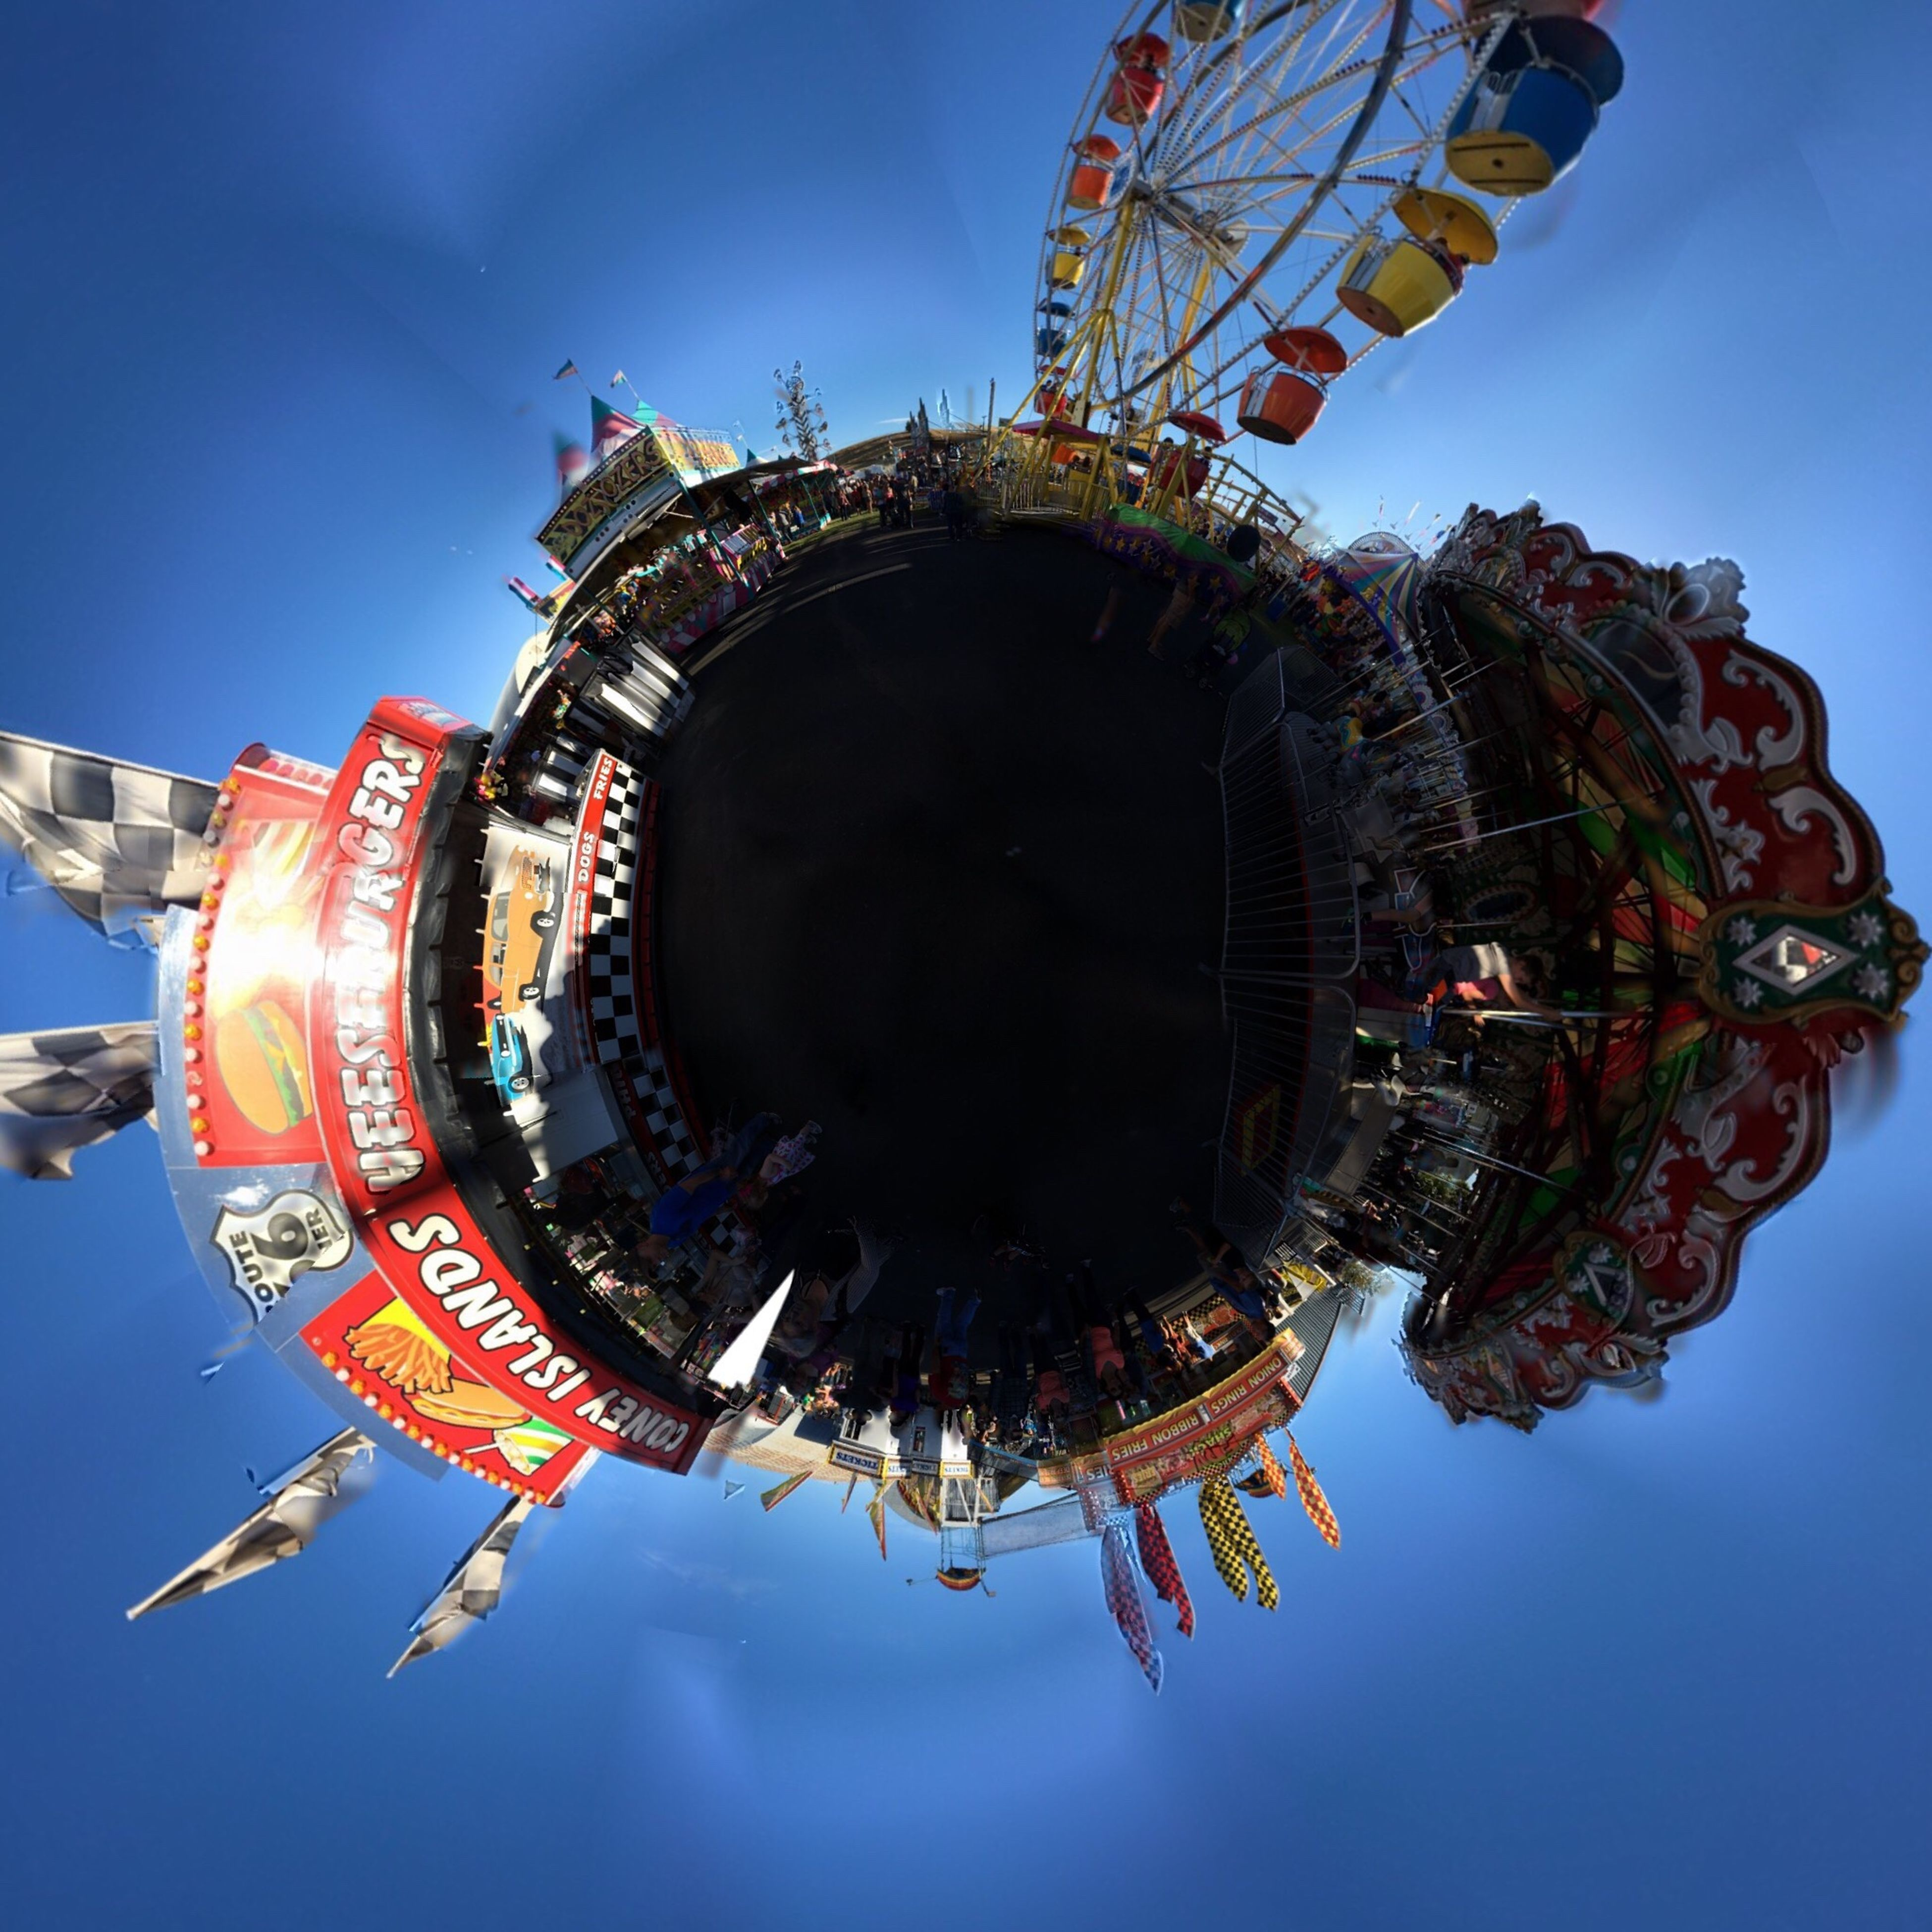 sky, fish-eye lens, clear sky, architecture, amusement park, outdoors, built structure, blue, building exterior, low angle view, day, no people, amusement park ride, skyscraper, water, cityscape